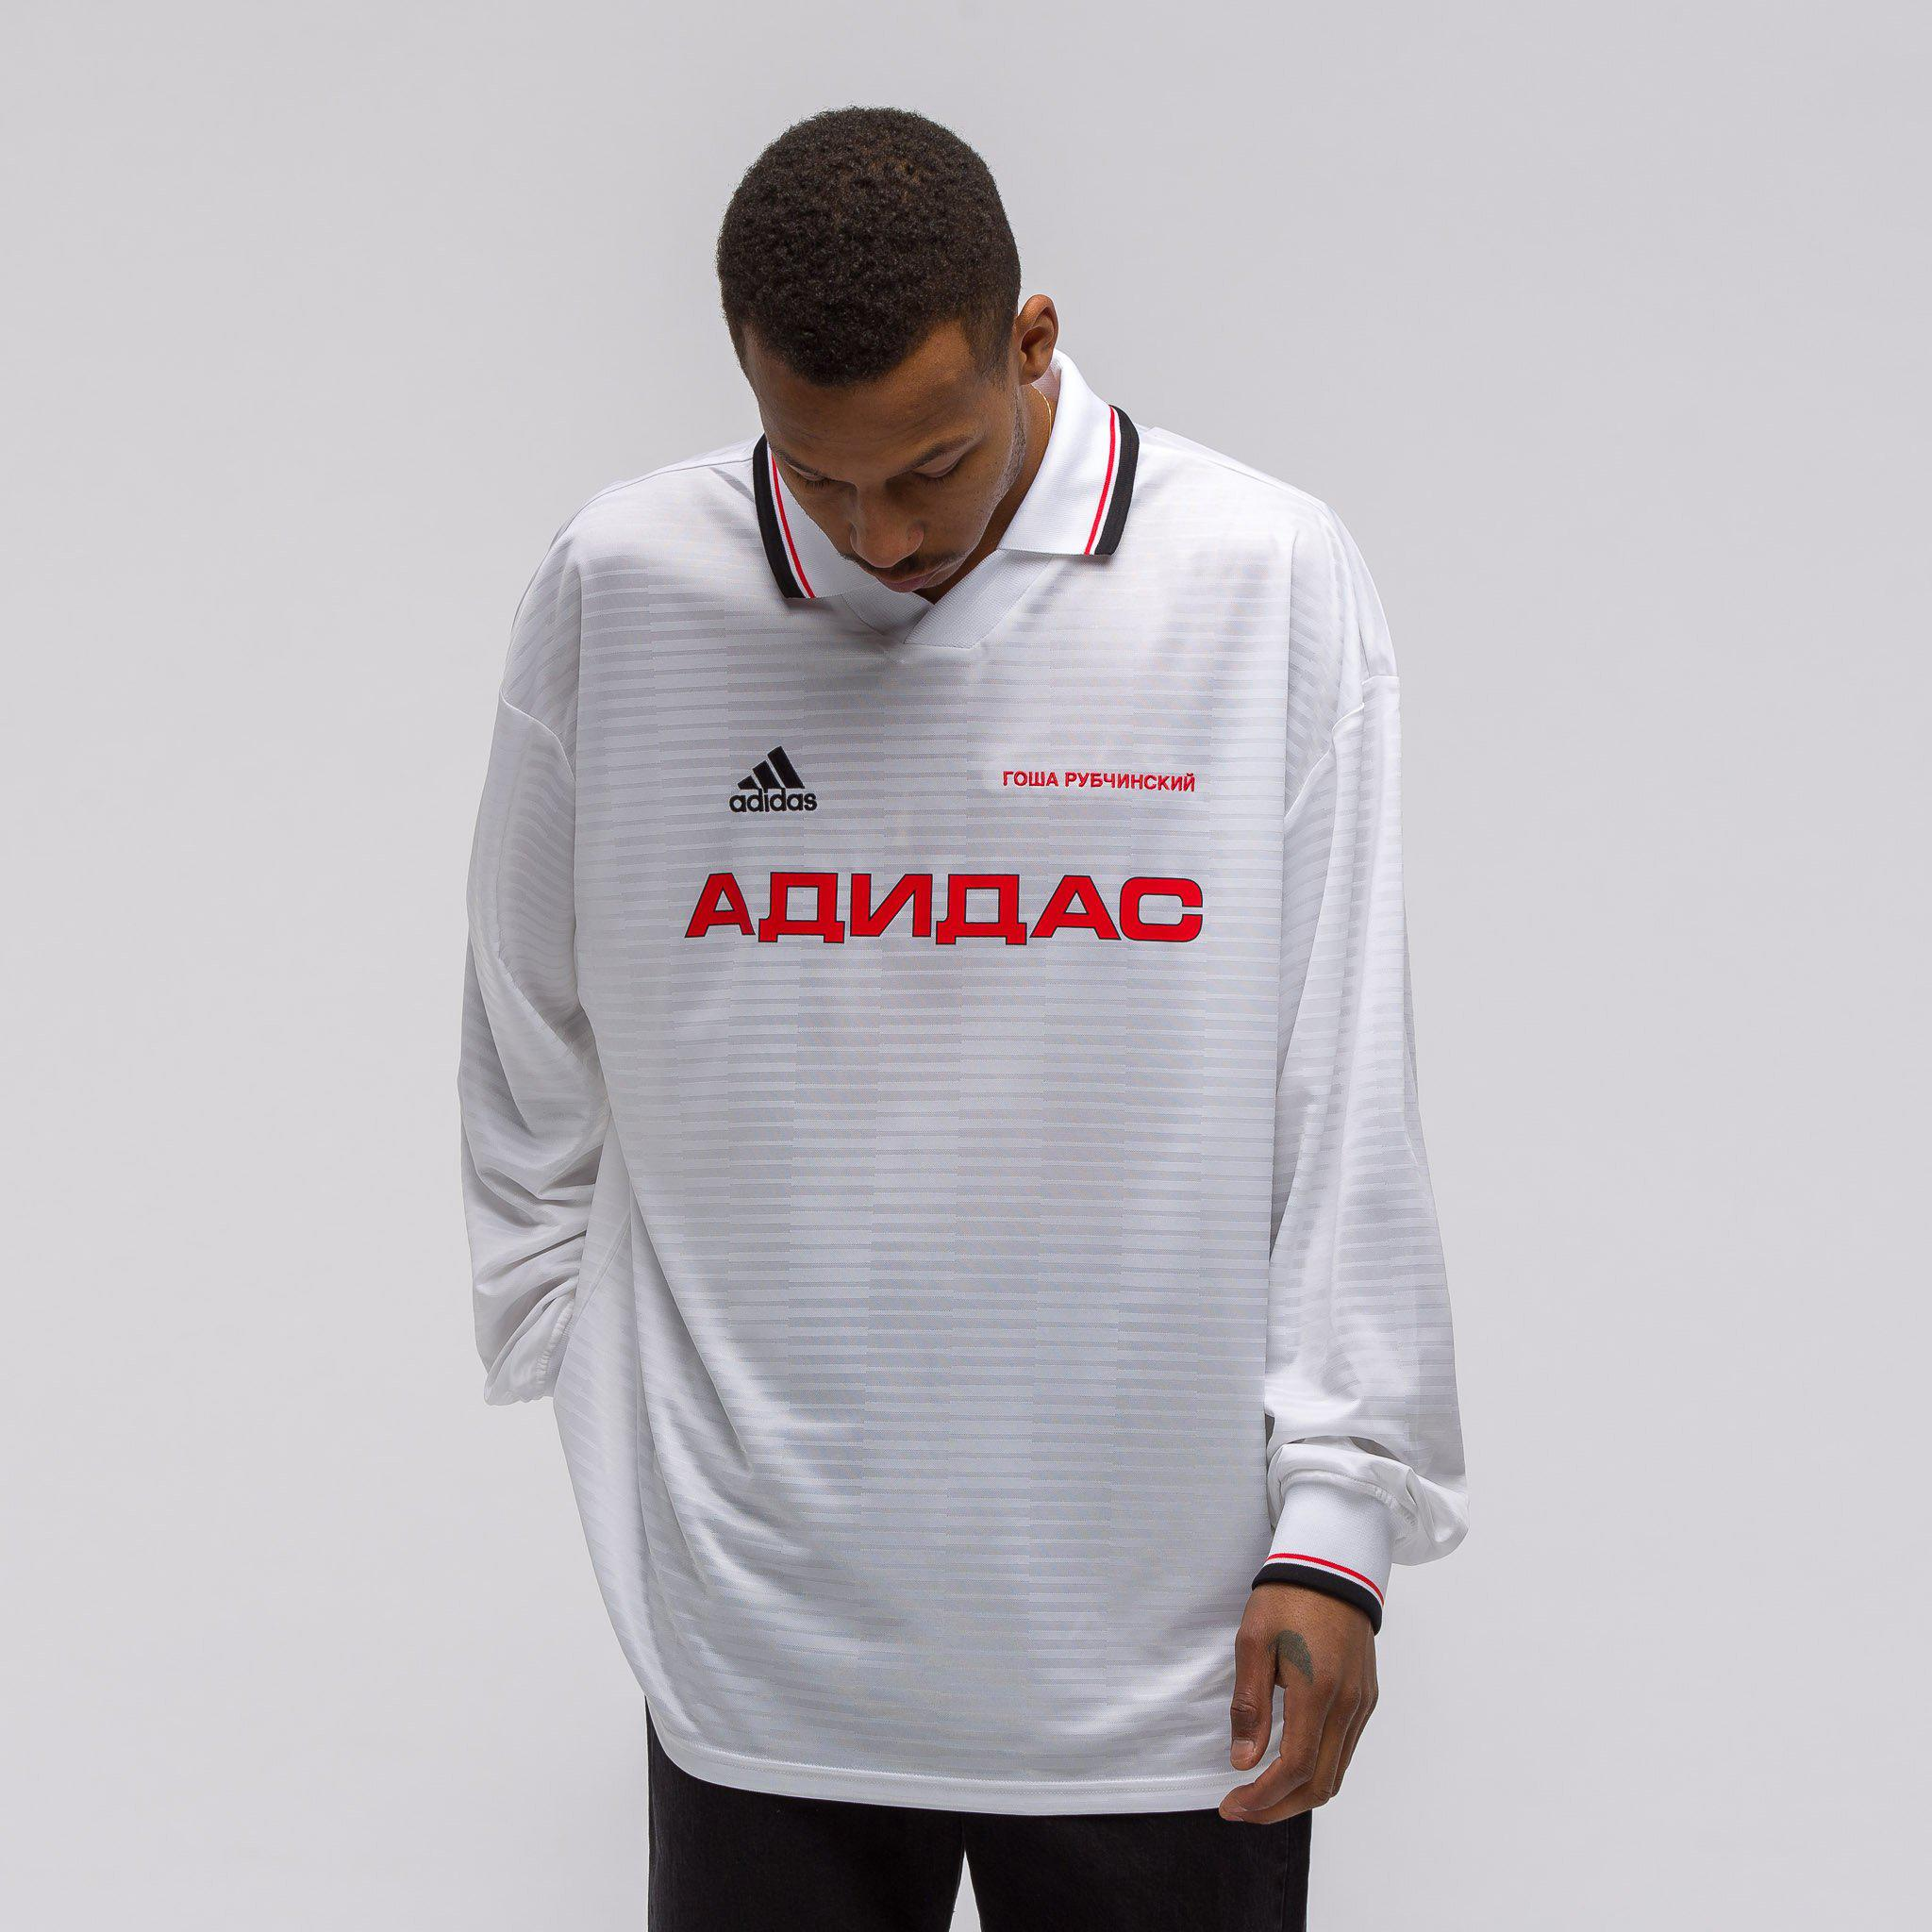 competitive price 07ace 26616 Lyst - Gosha Rubchinskiy X Adidas Long Sleeve Jersey Top In